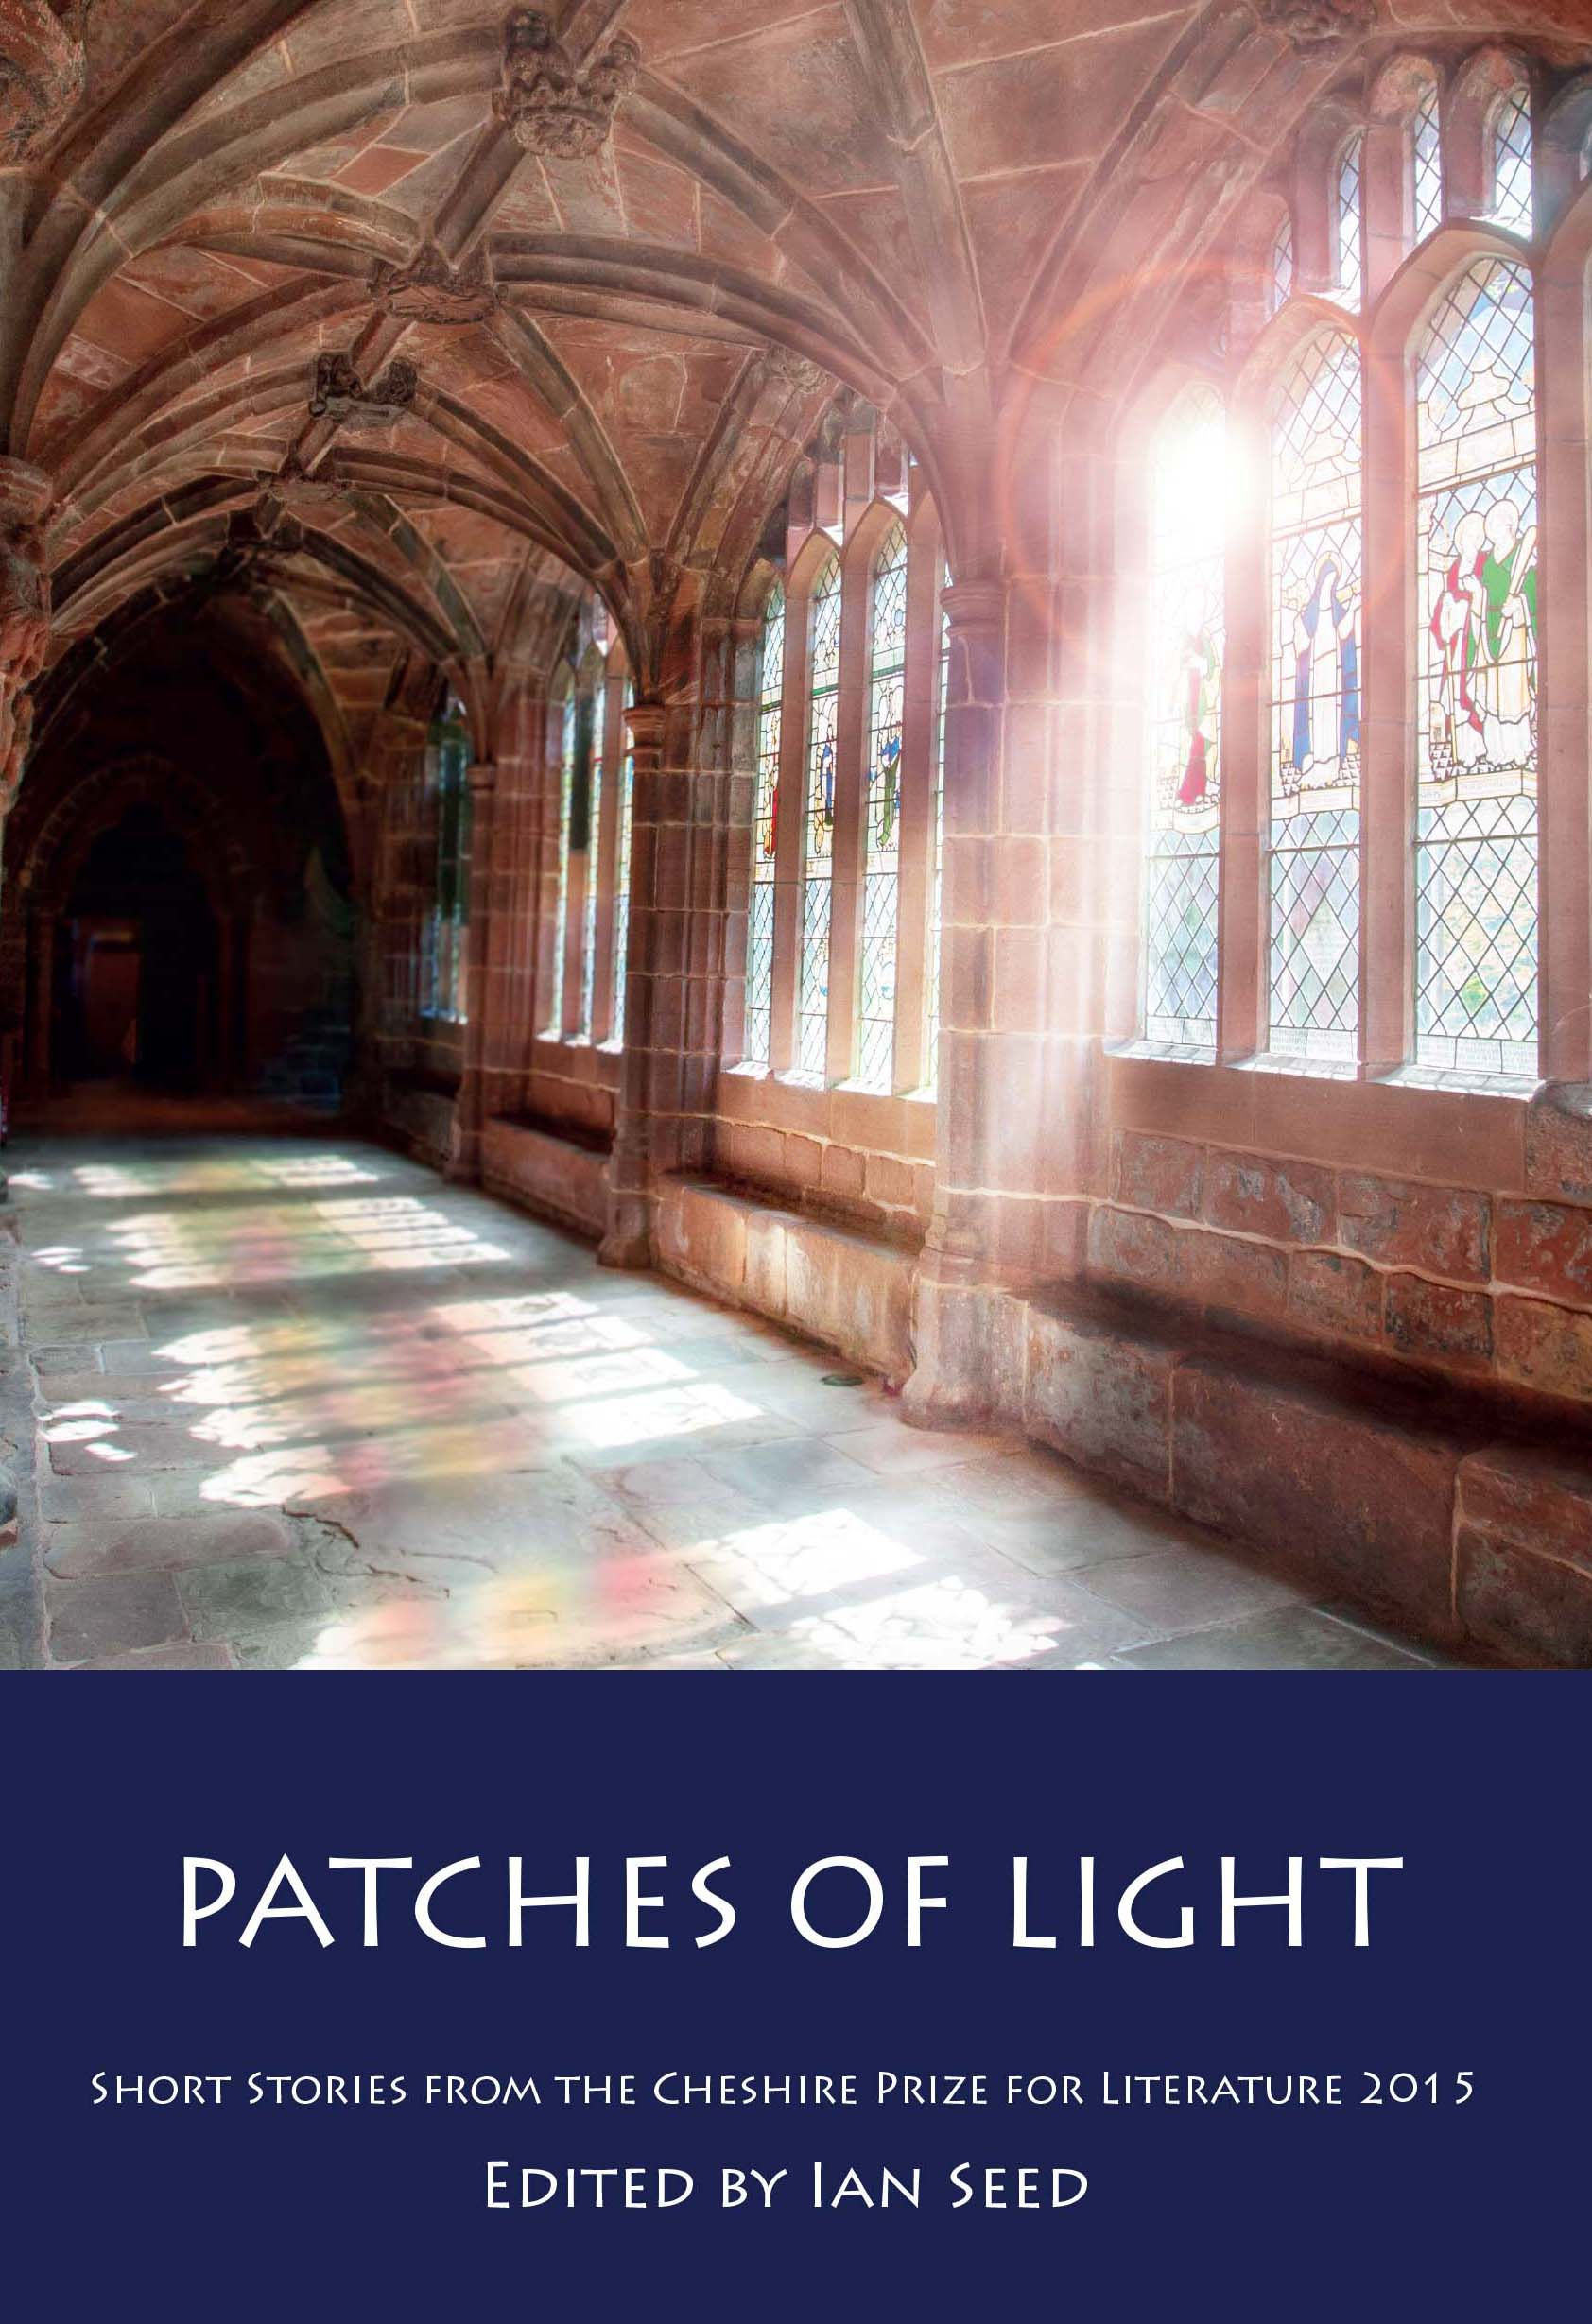 Patches of Light - Short Stories from the Cheshire Prize for Literature 2015